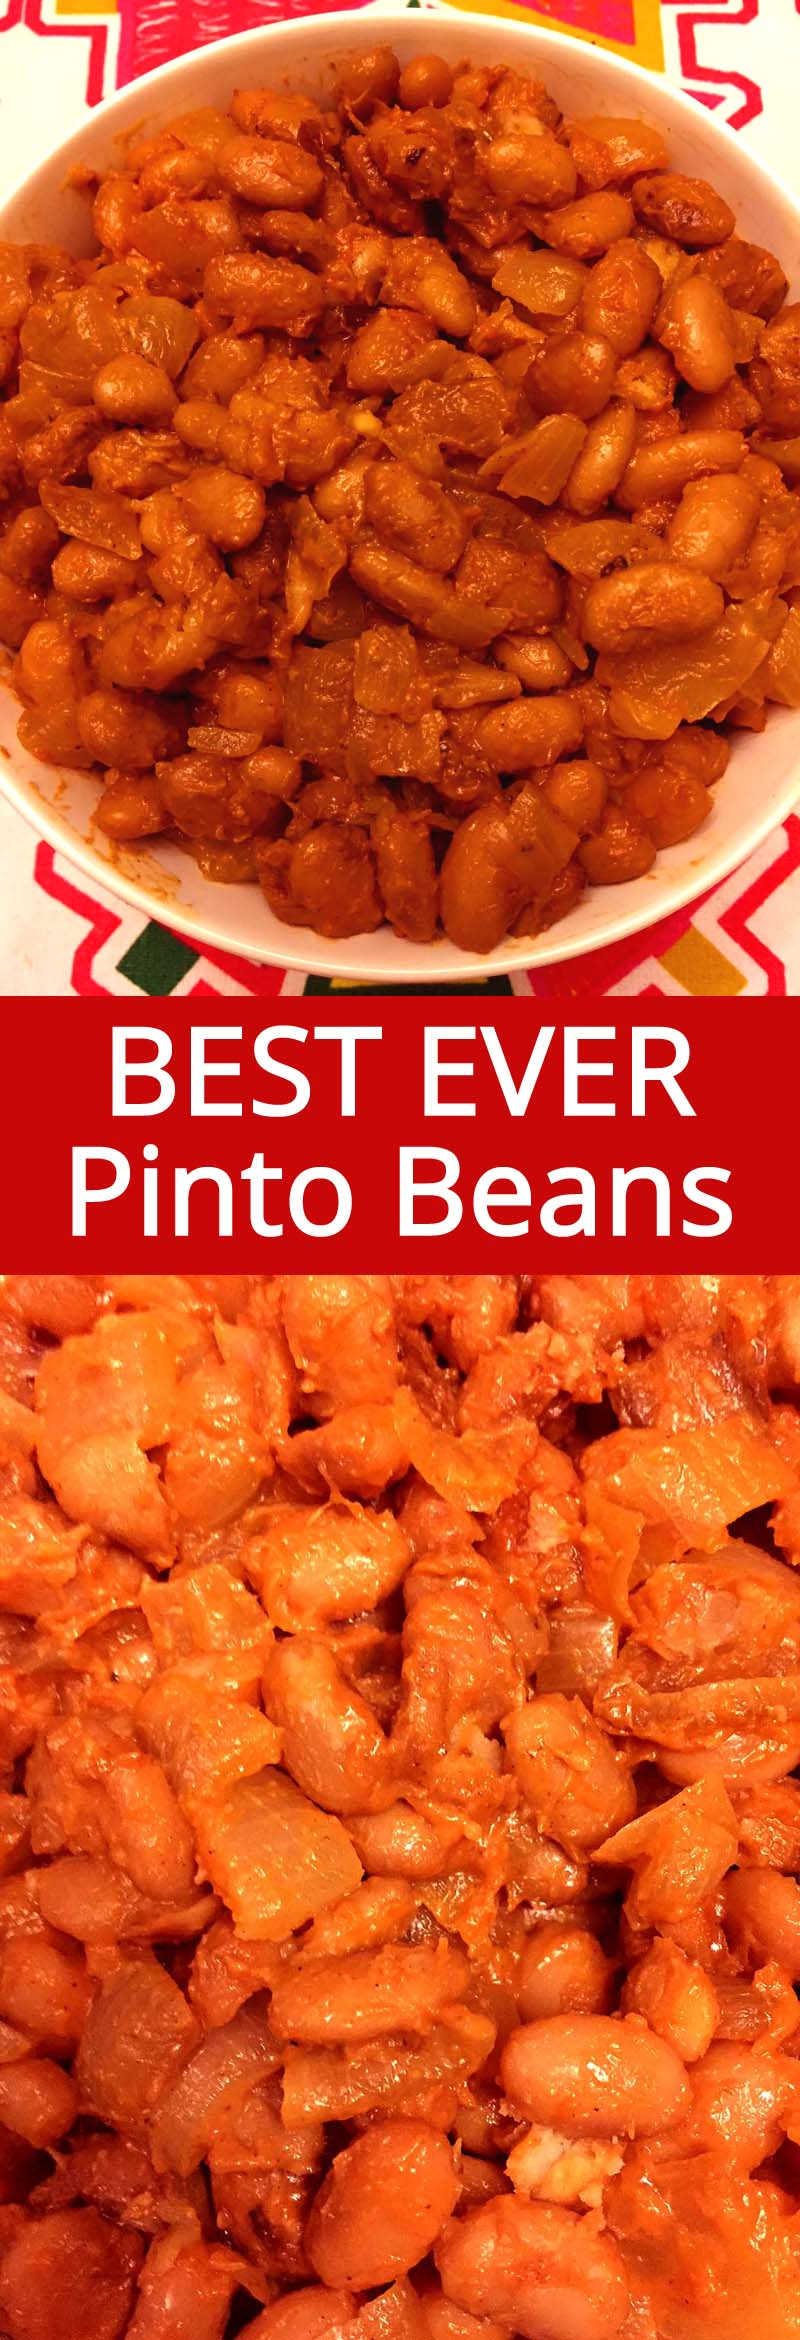 These simple pinto beans with onions are mouthwatering! This is my favorite pinto beans recipe, so easy to make and so delicious!